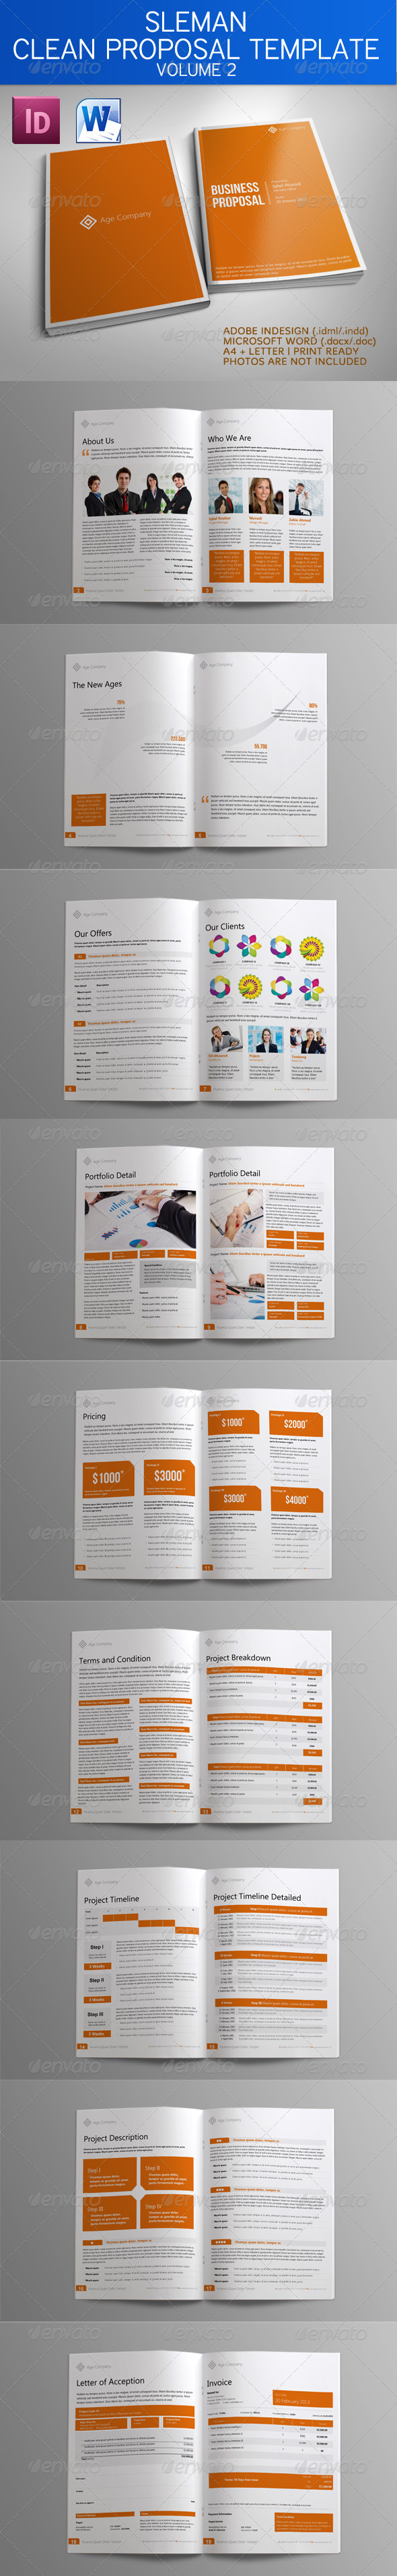 GraphicRiver Sleman Clean Proposal Template Volume 2 4068948